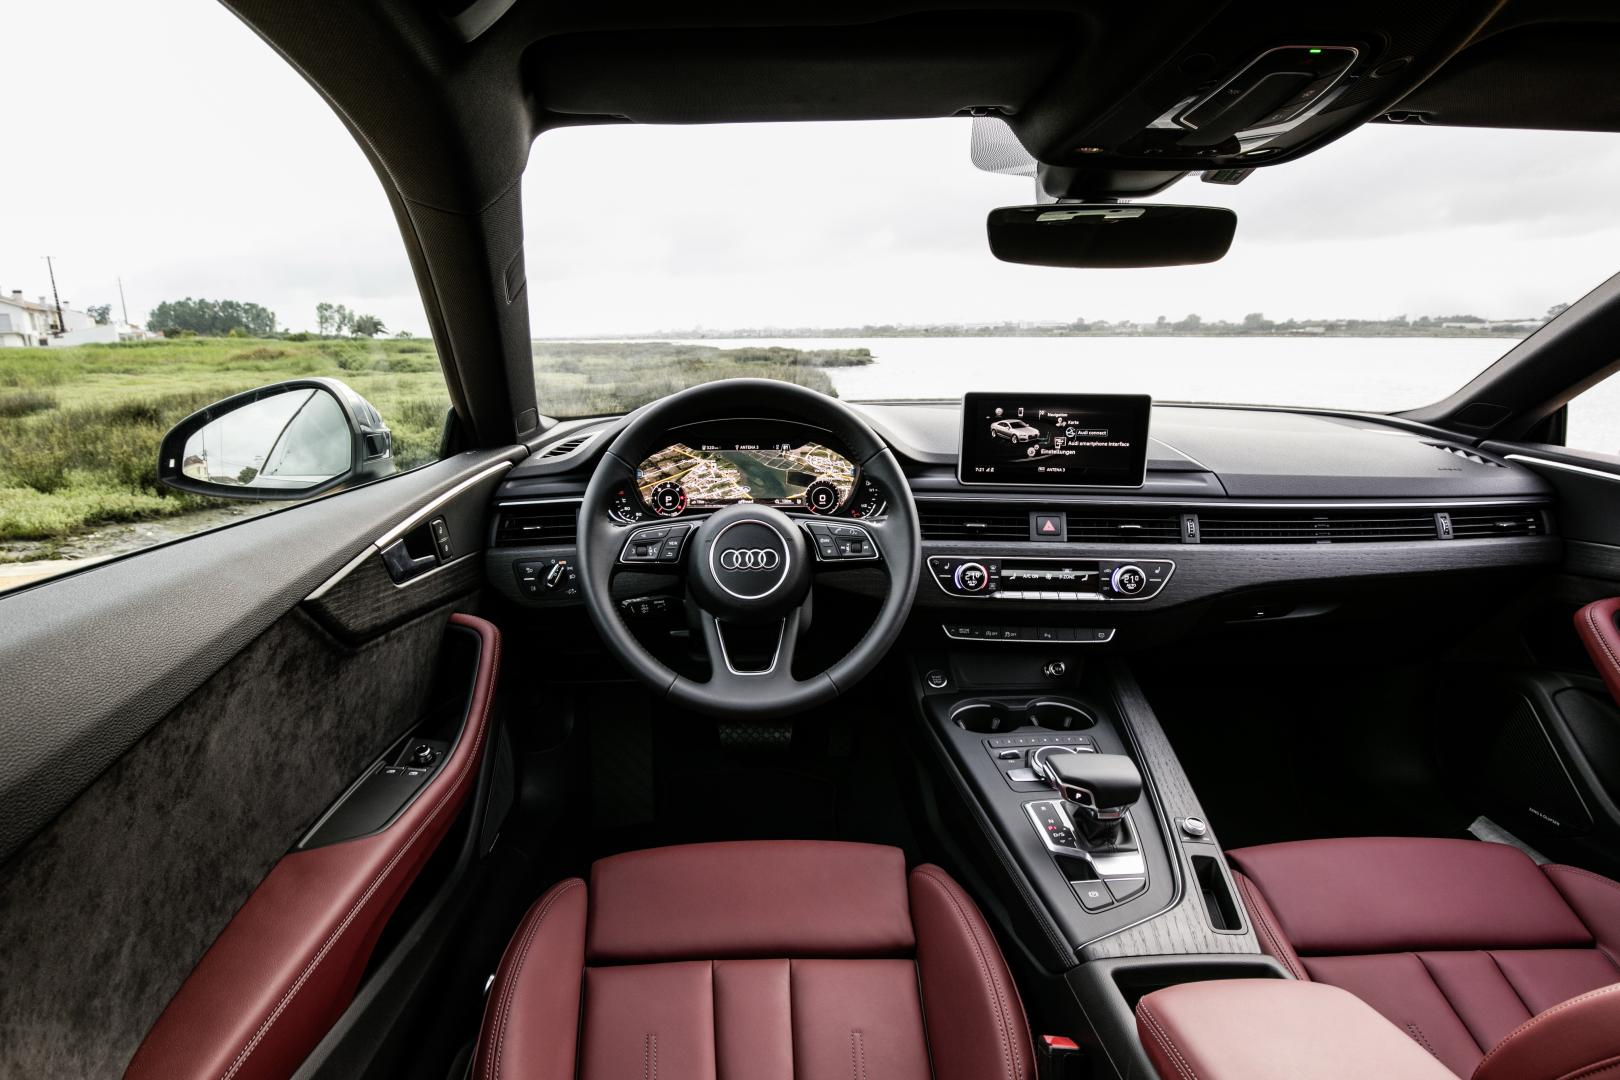 test audi a5 coup 2 0 tdi s tronic topgear. Black Bedroom Furniture Sets. Home Design Ideas